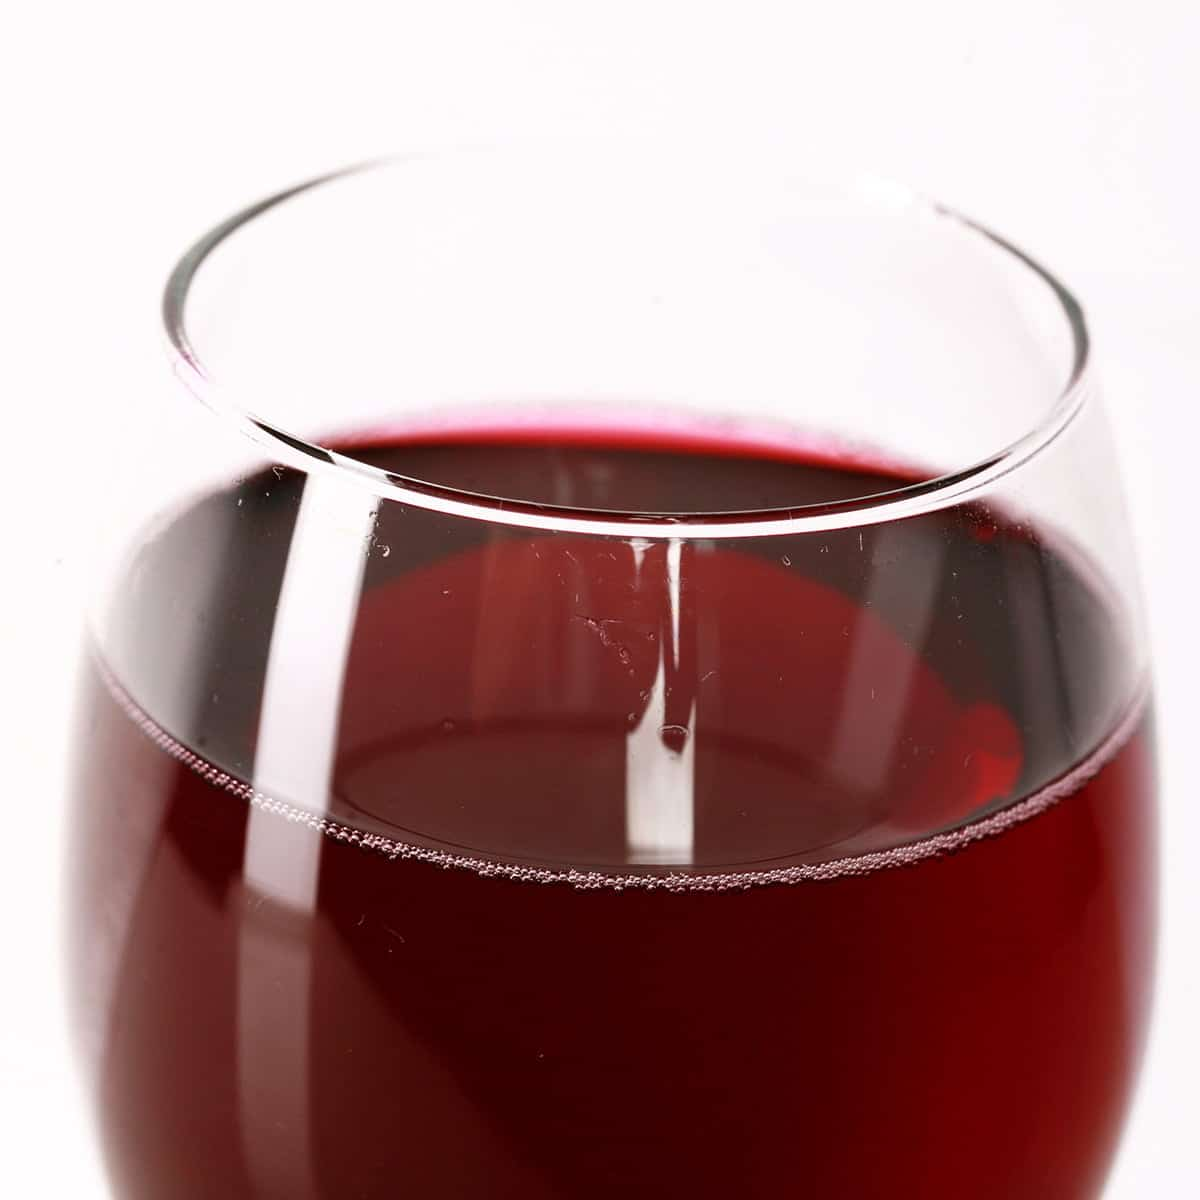 Close up view of a glass of red wine, made from this cherry wine recipe.